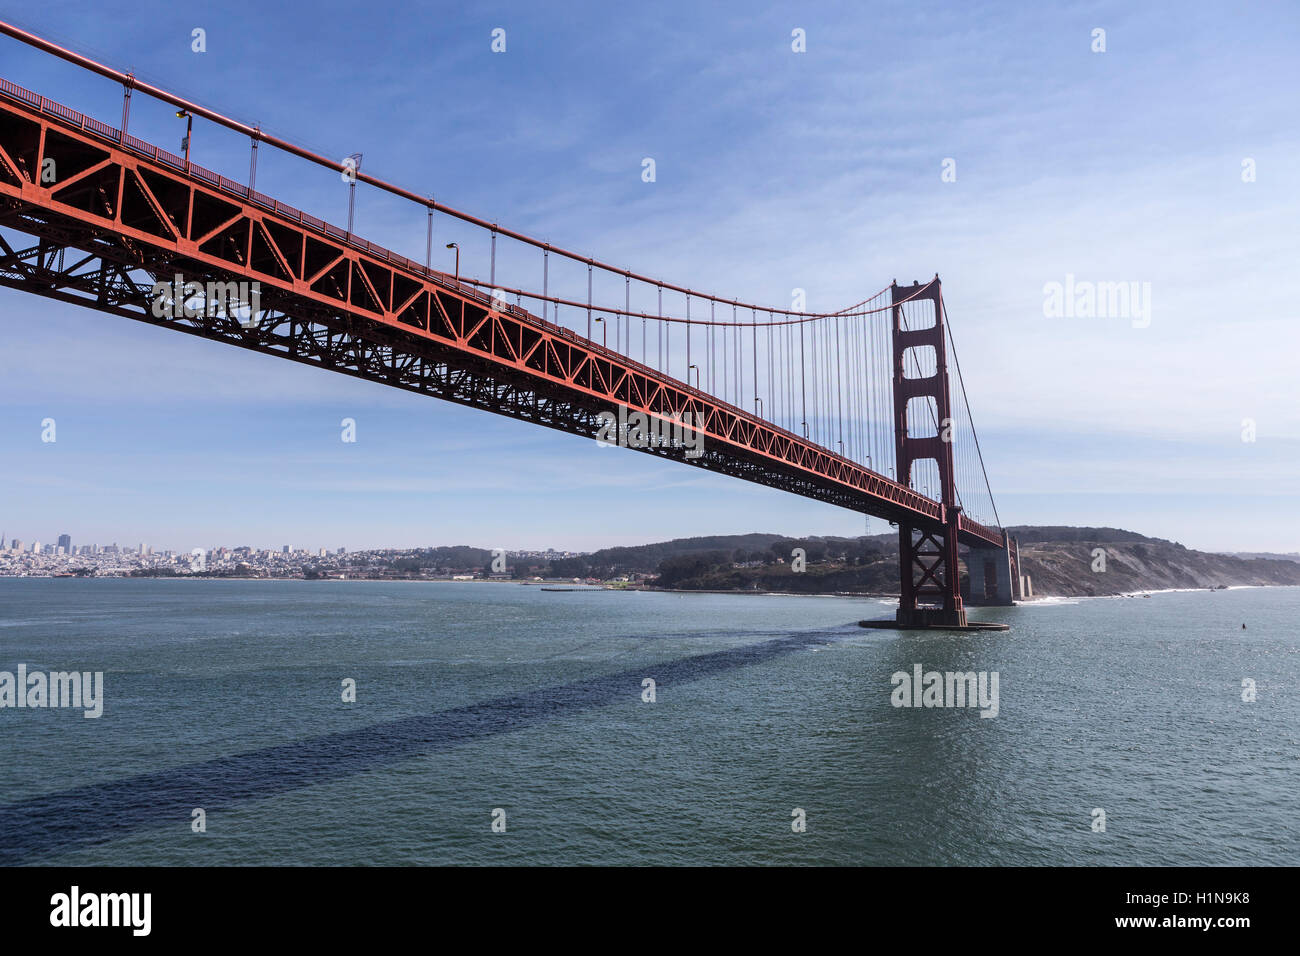 Low aerial of the Golden Gate Bridge in San Francisco, California. - Stock Image